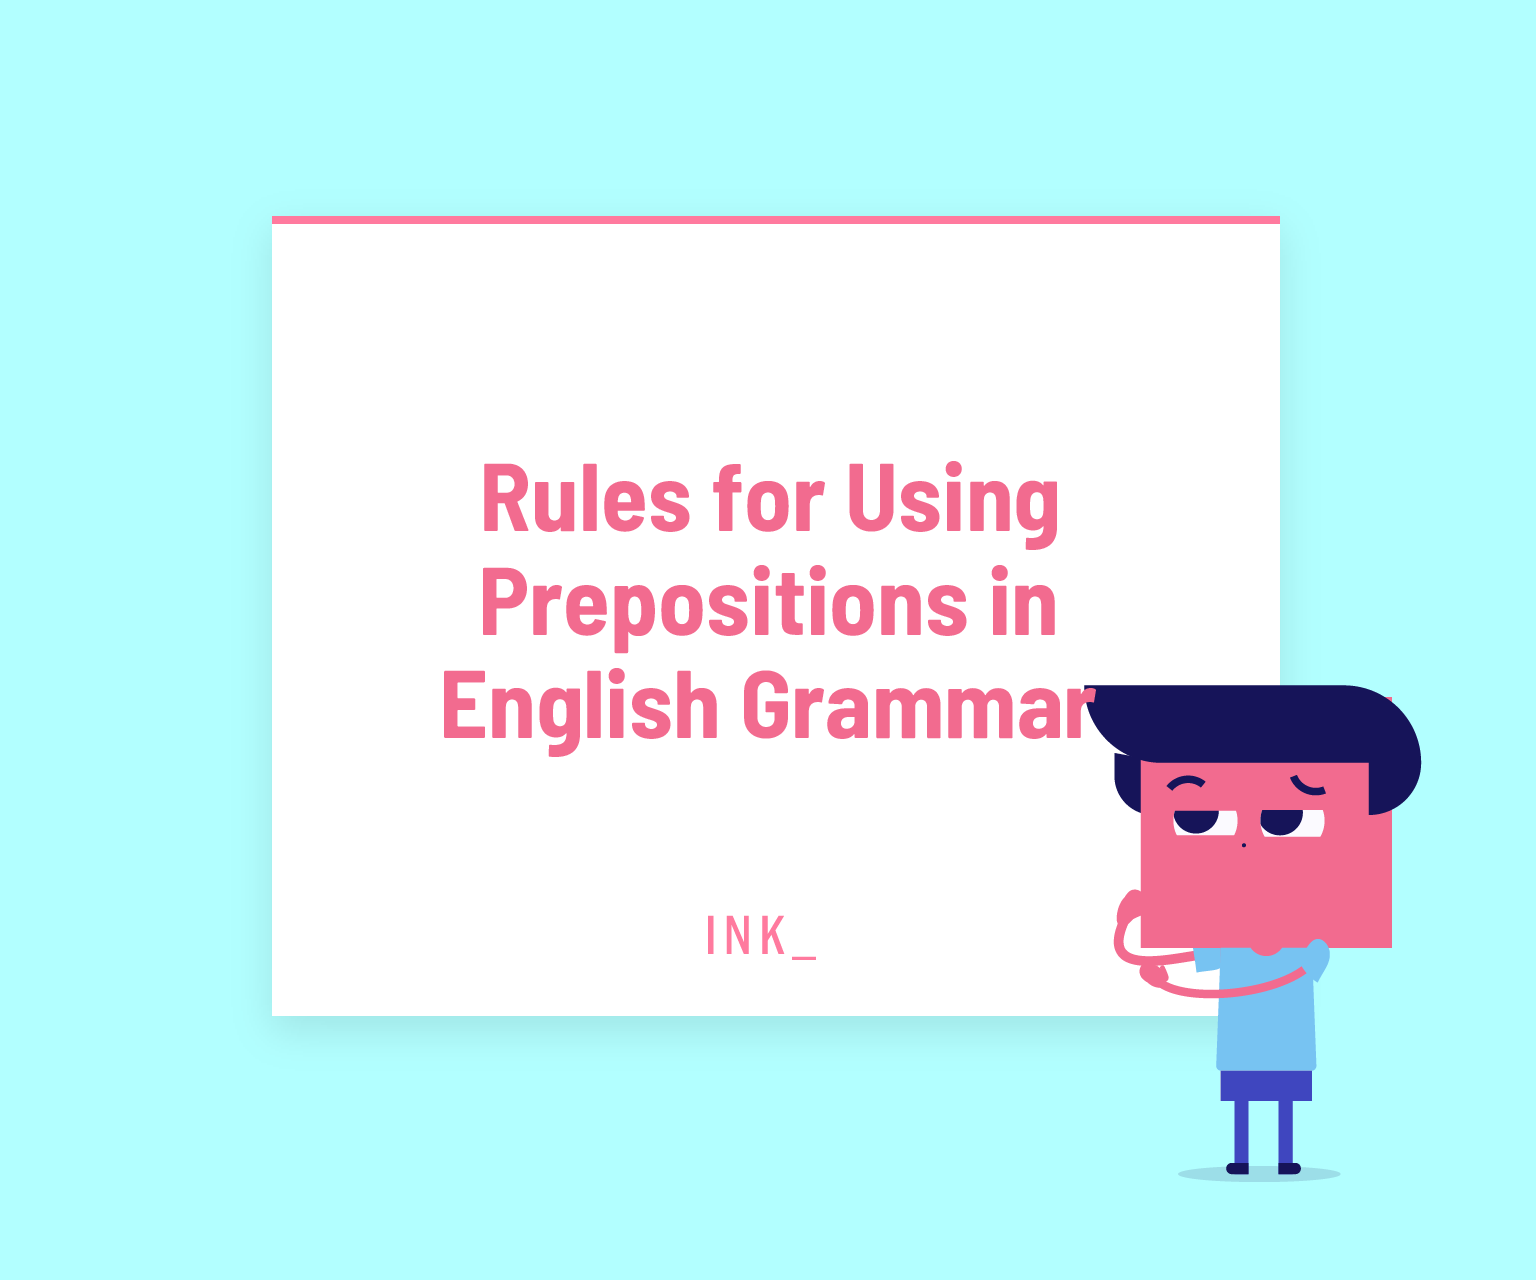 Rules for using prepositions in english grammar